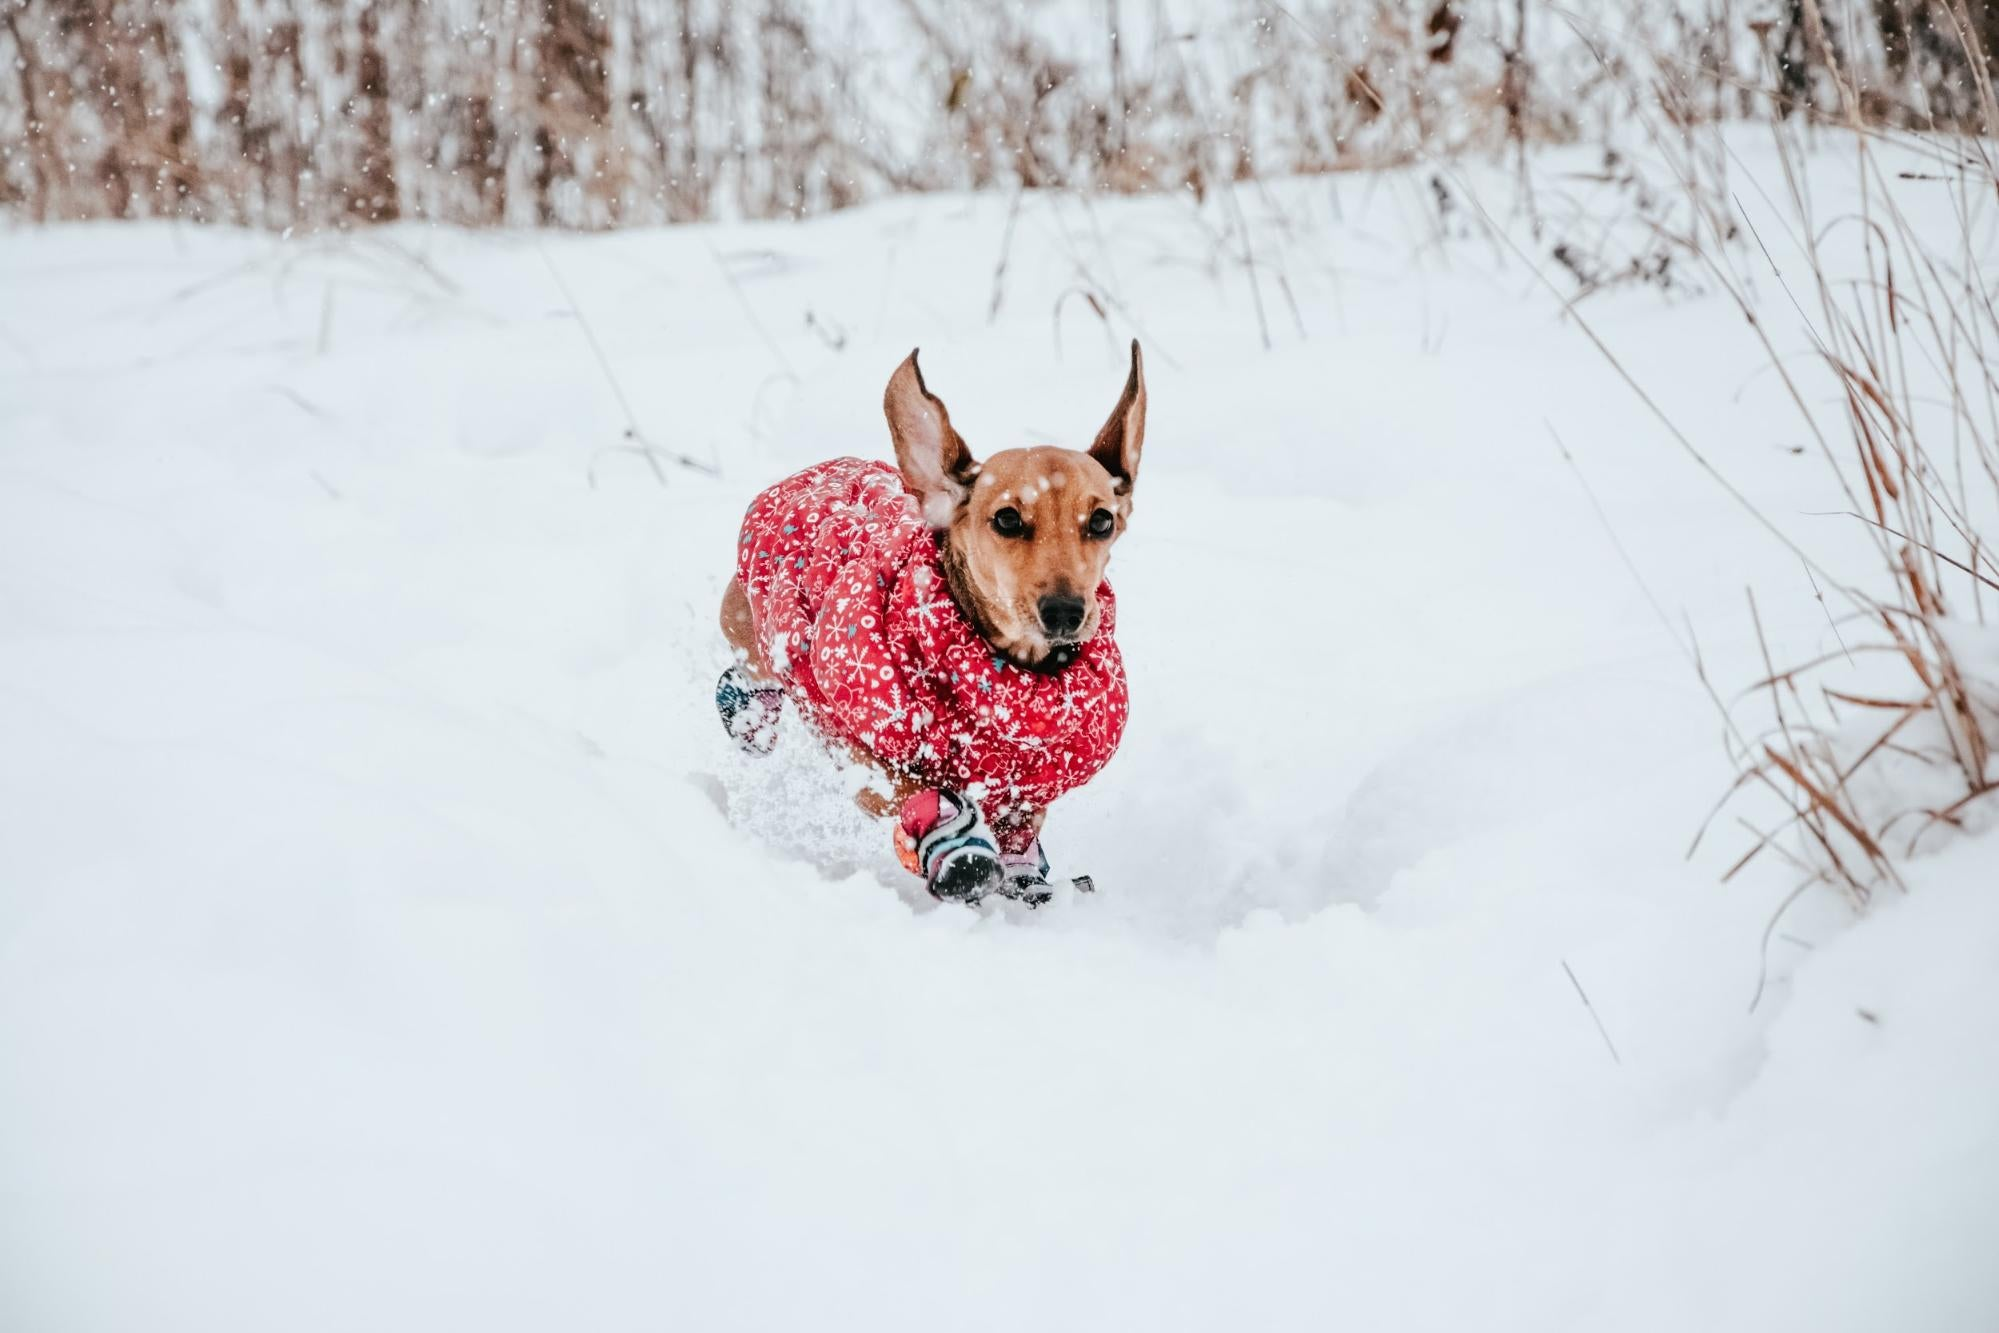 Small dog running in the snow.